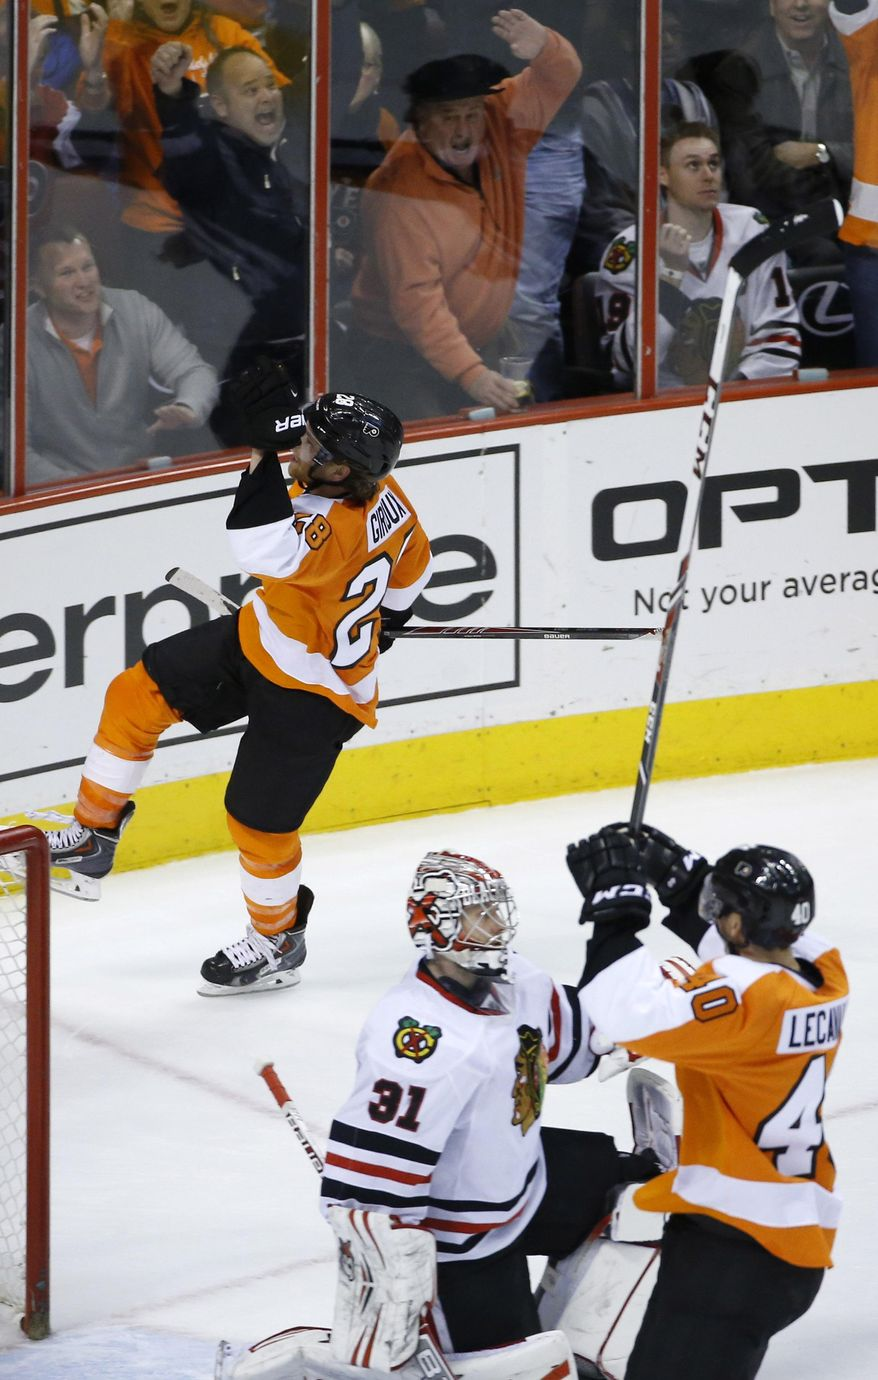 Philadelphia Flyers' Claude Giroux (28) and Vincent Lecavalier (40) celebrate after Giroux's goal against Chicago Blackhawks' Antti Raanta (31), of Finland, during overtime of an NHL hockey game, Tuesday, March 18, 2014, in Philadelphia. Philadelphia won 3-2. (AP Photo/Matt Slocum)